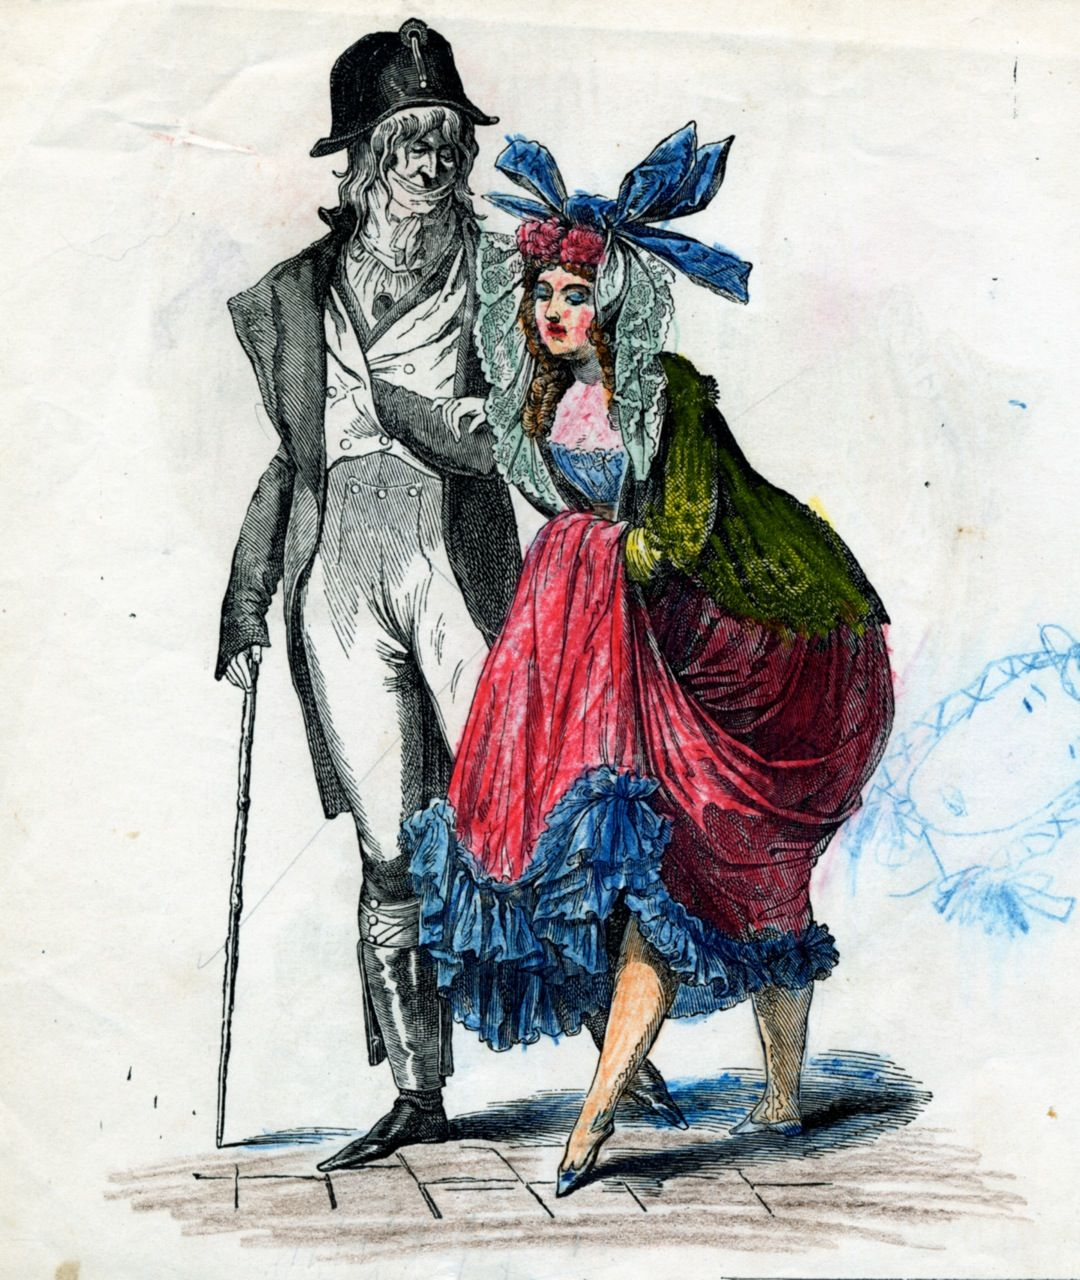 This Marveilleux seems to display a low-cut bustier under a vibrant colored dress. She also shows how marvelous she is with her oversized hair ribbon.